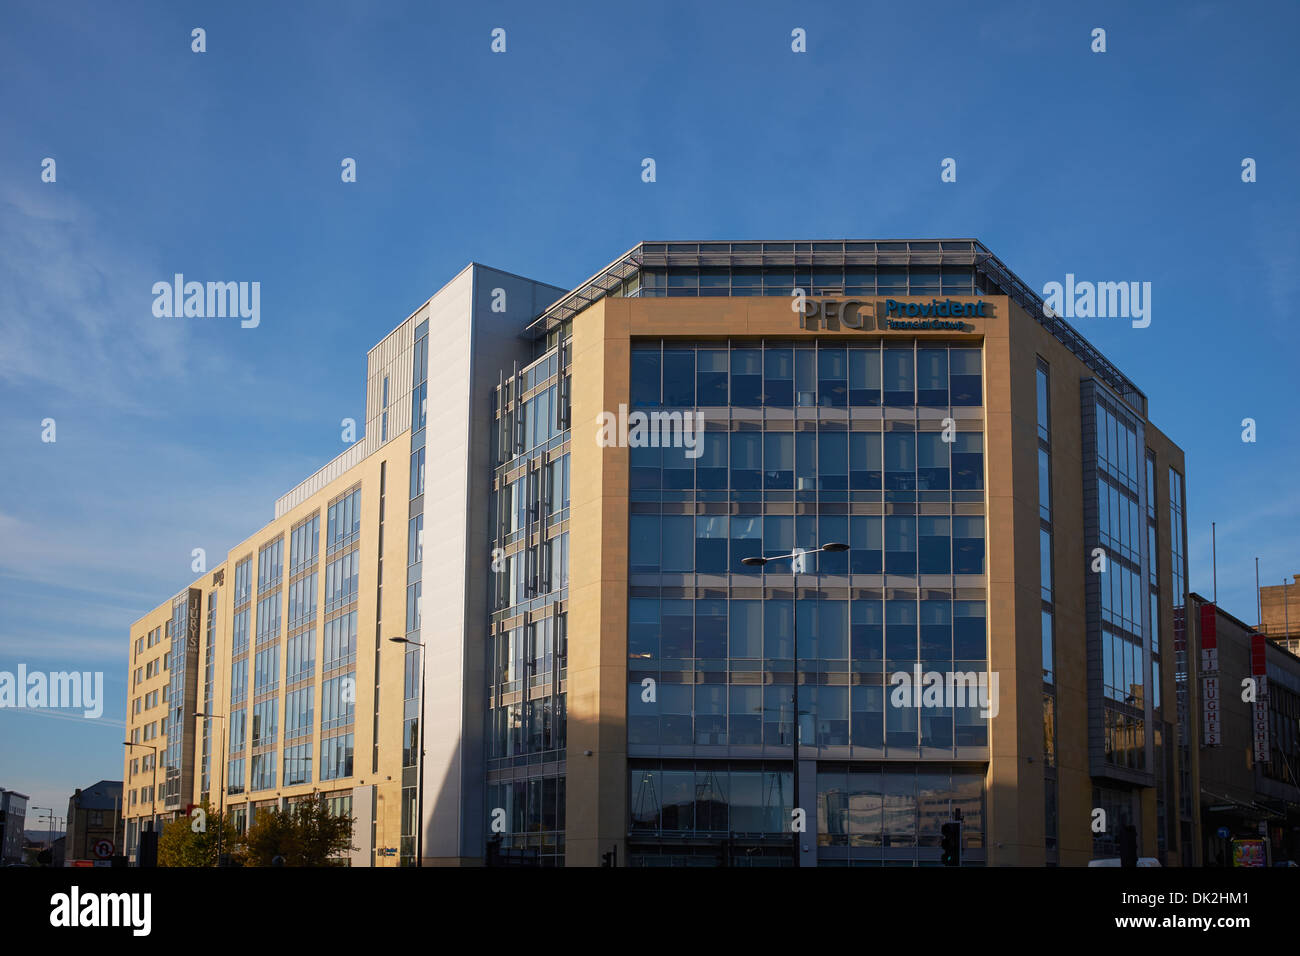 Provident Financial Group office building in Bradford city centre - Stock Image